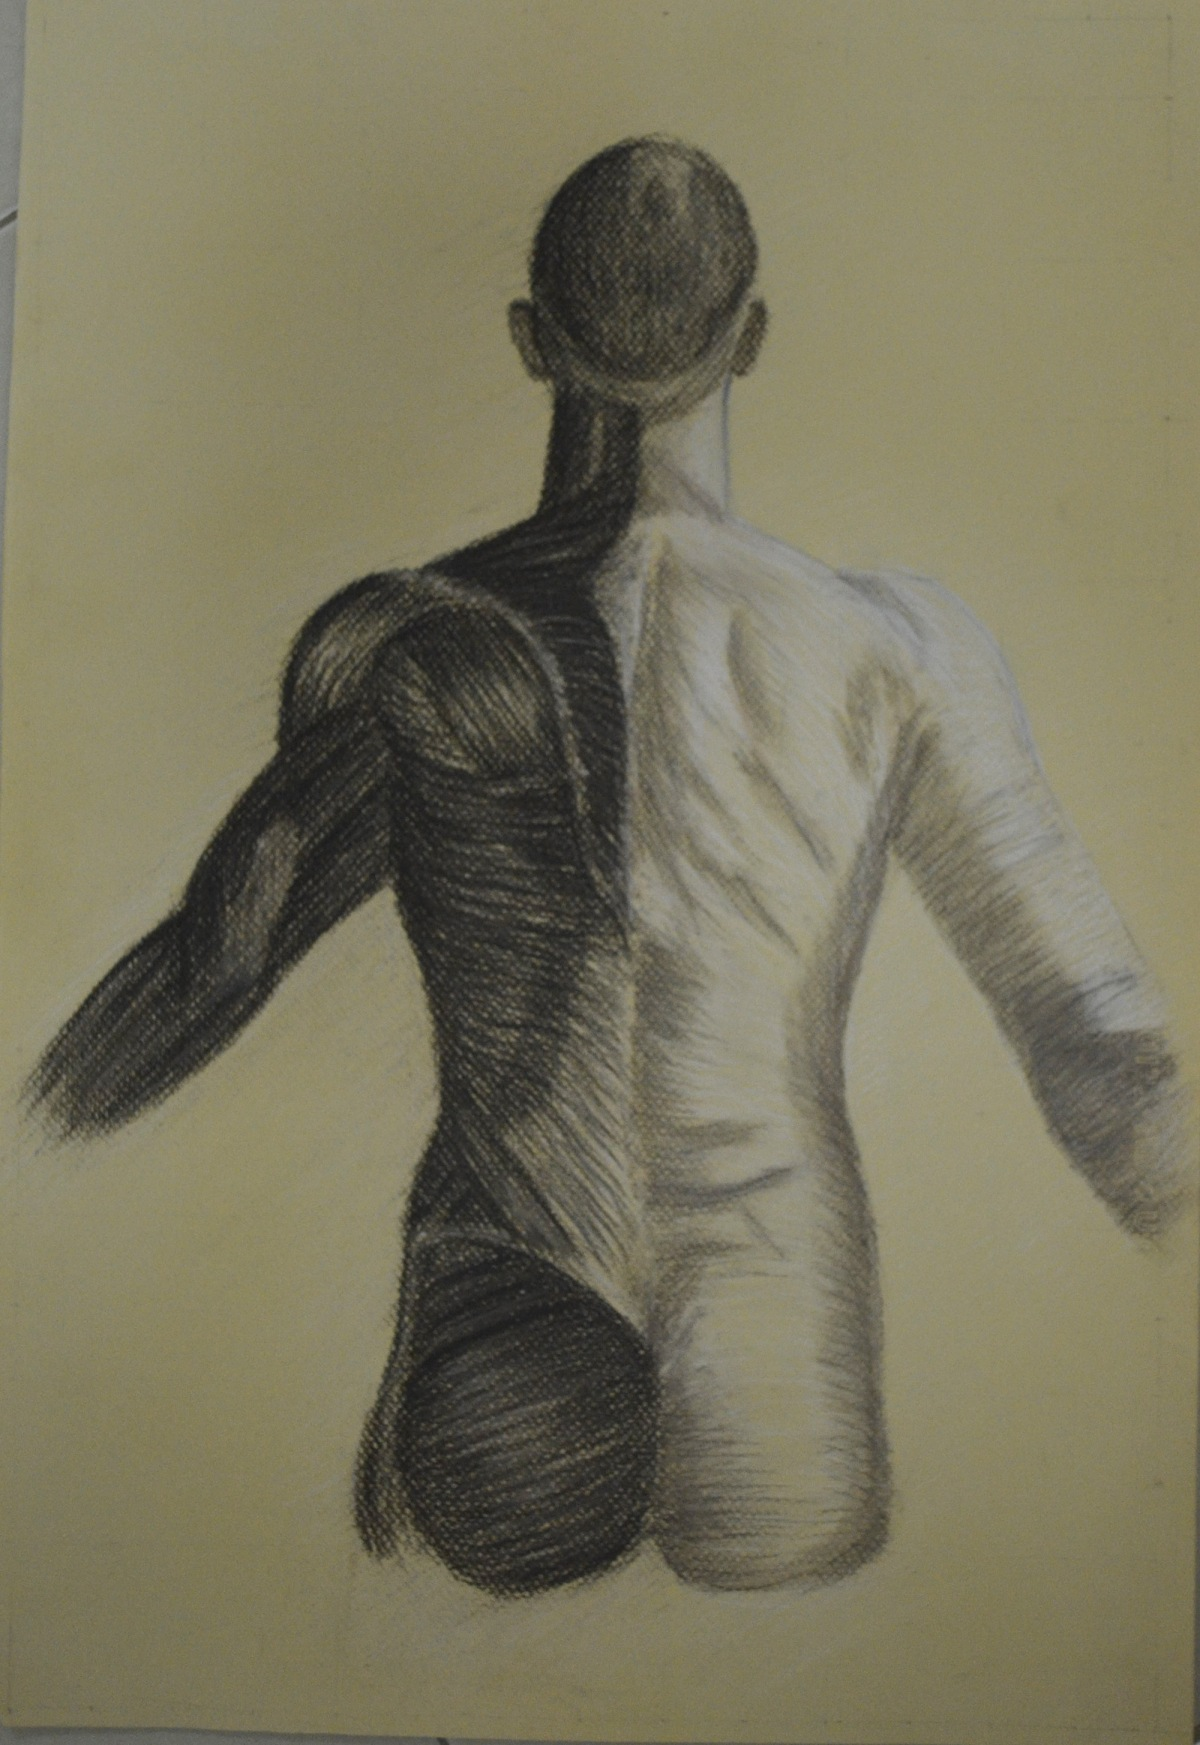 4 - Finished Anatomical Drawing Half and Half